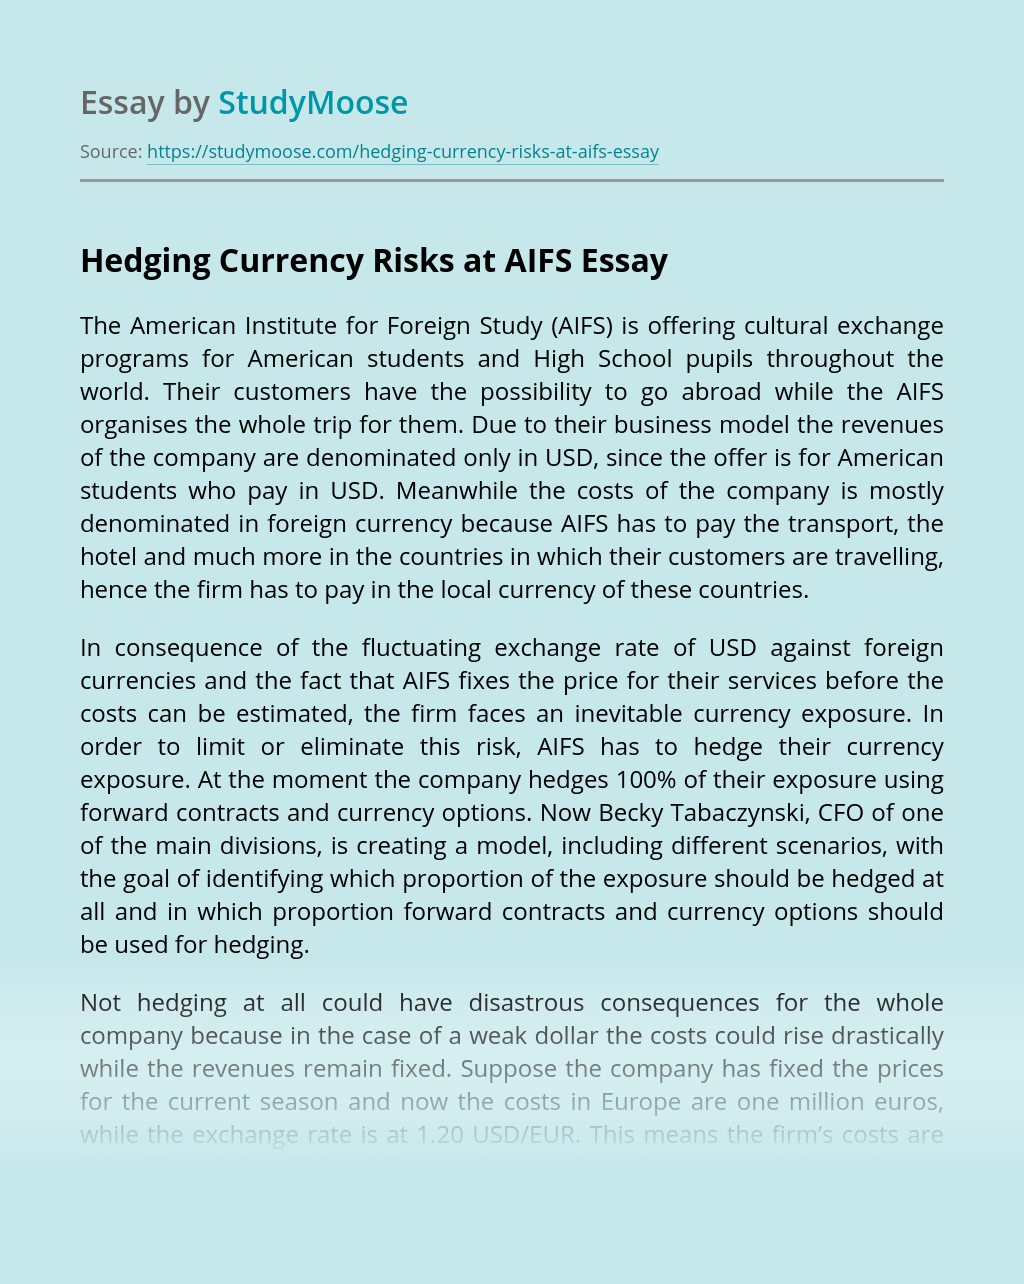 Hedging Currency Risks at AIFS